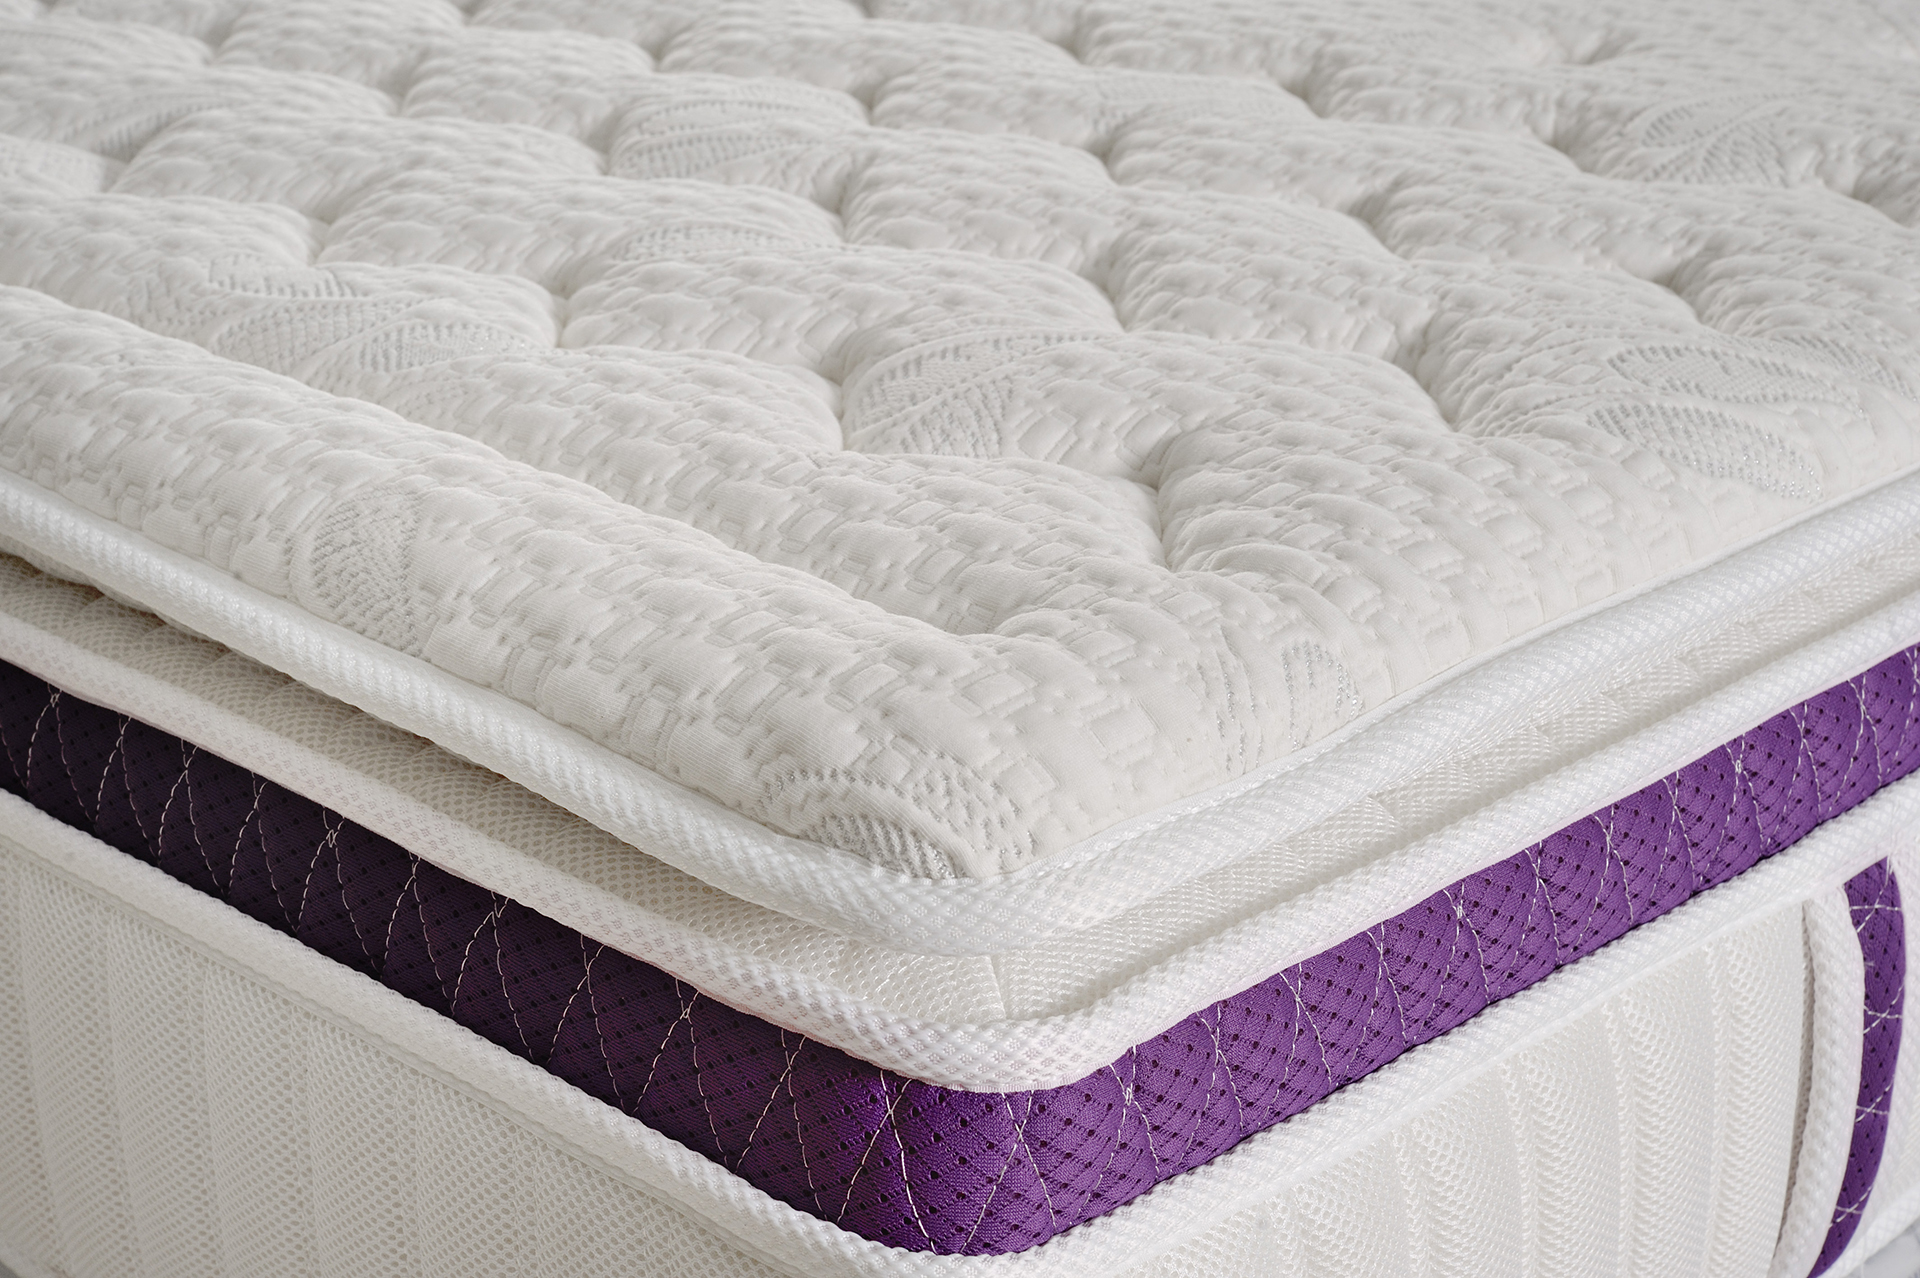 How Often Should I Change My Mattress How To Store A Mattress And How Not To Store One